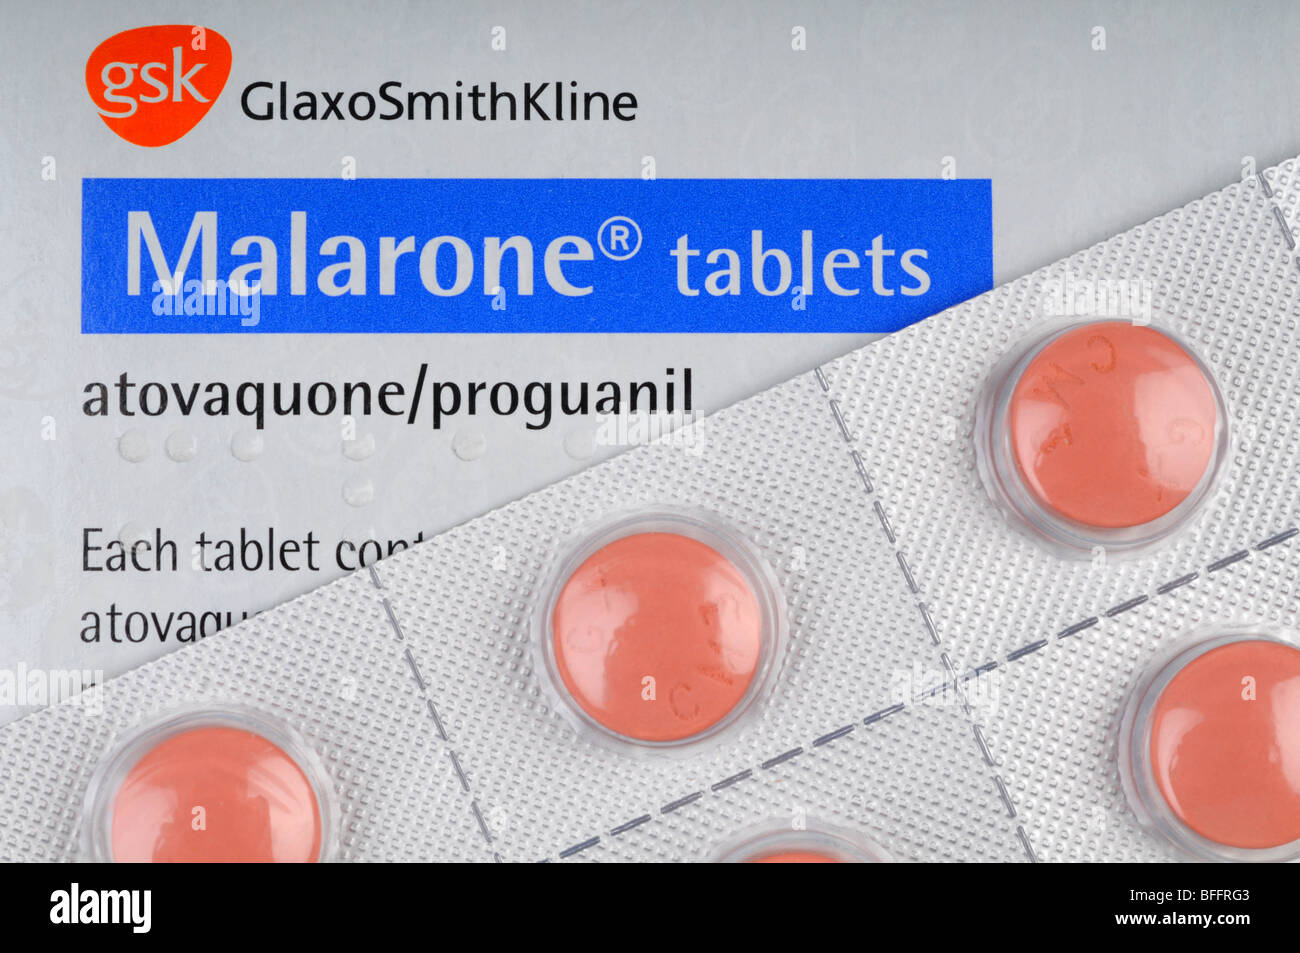 Cheapest place to buy malaria tablets